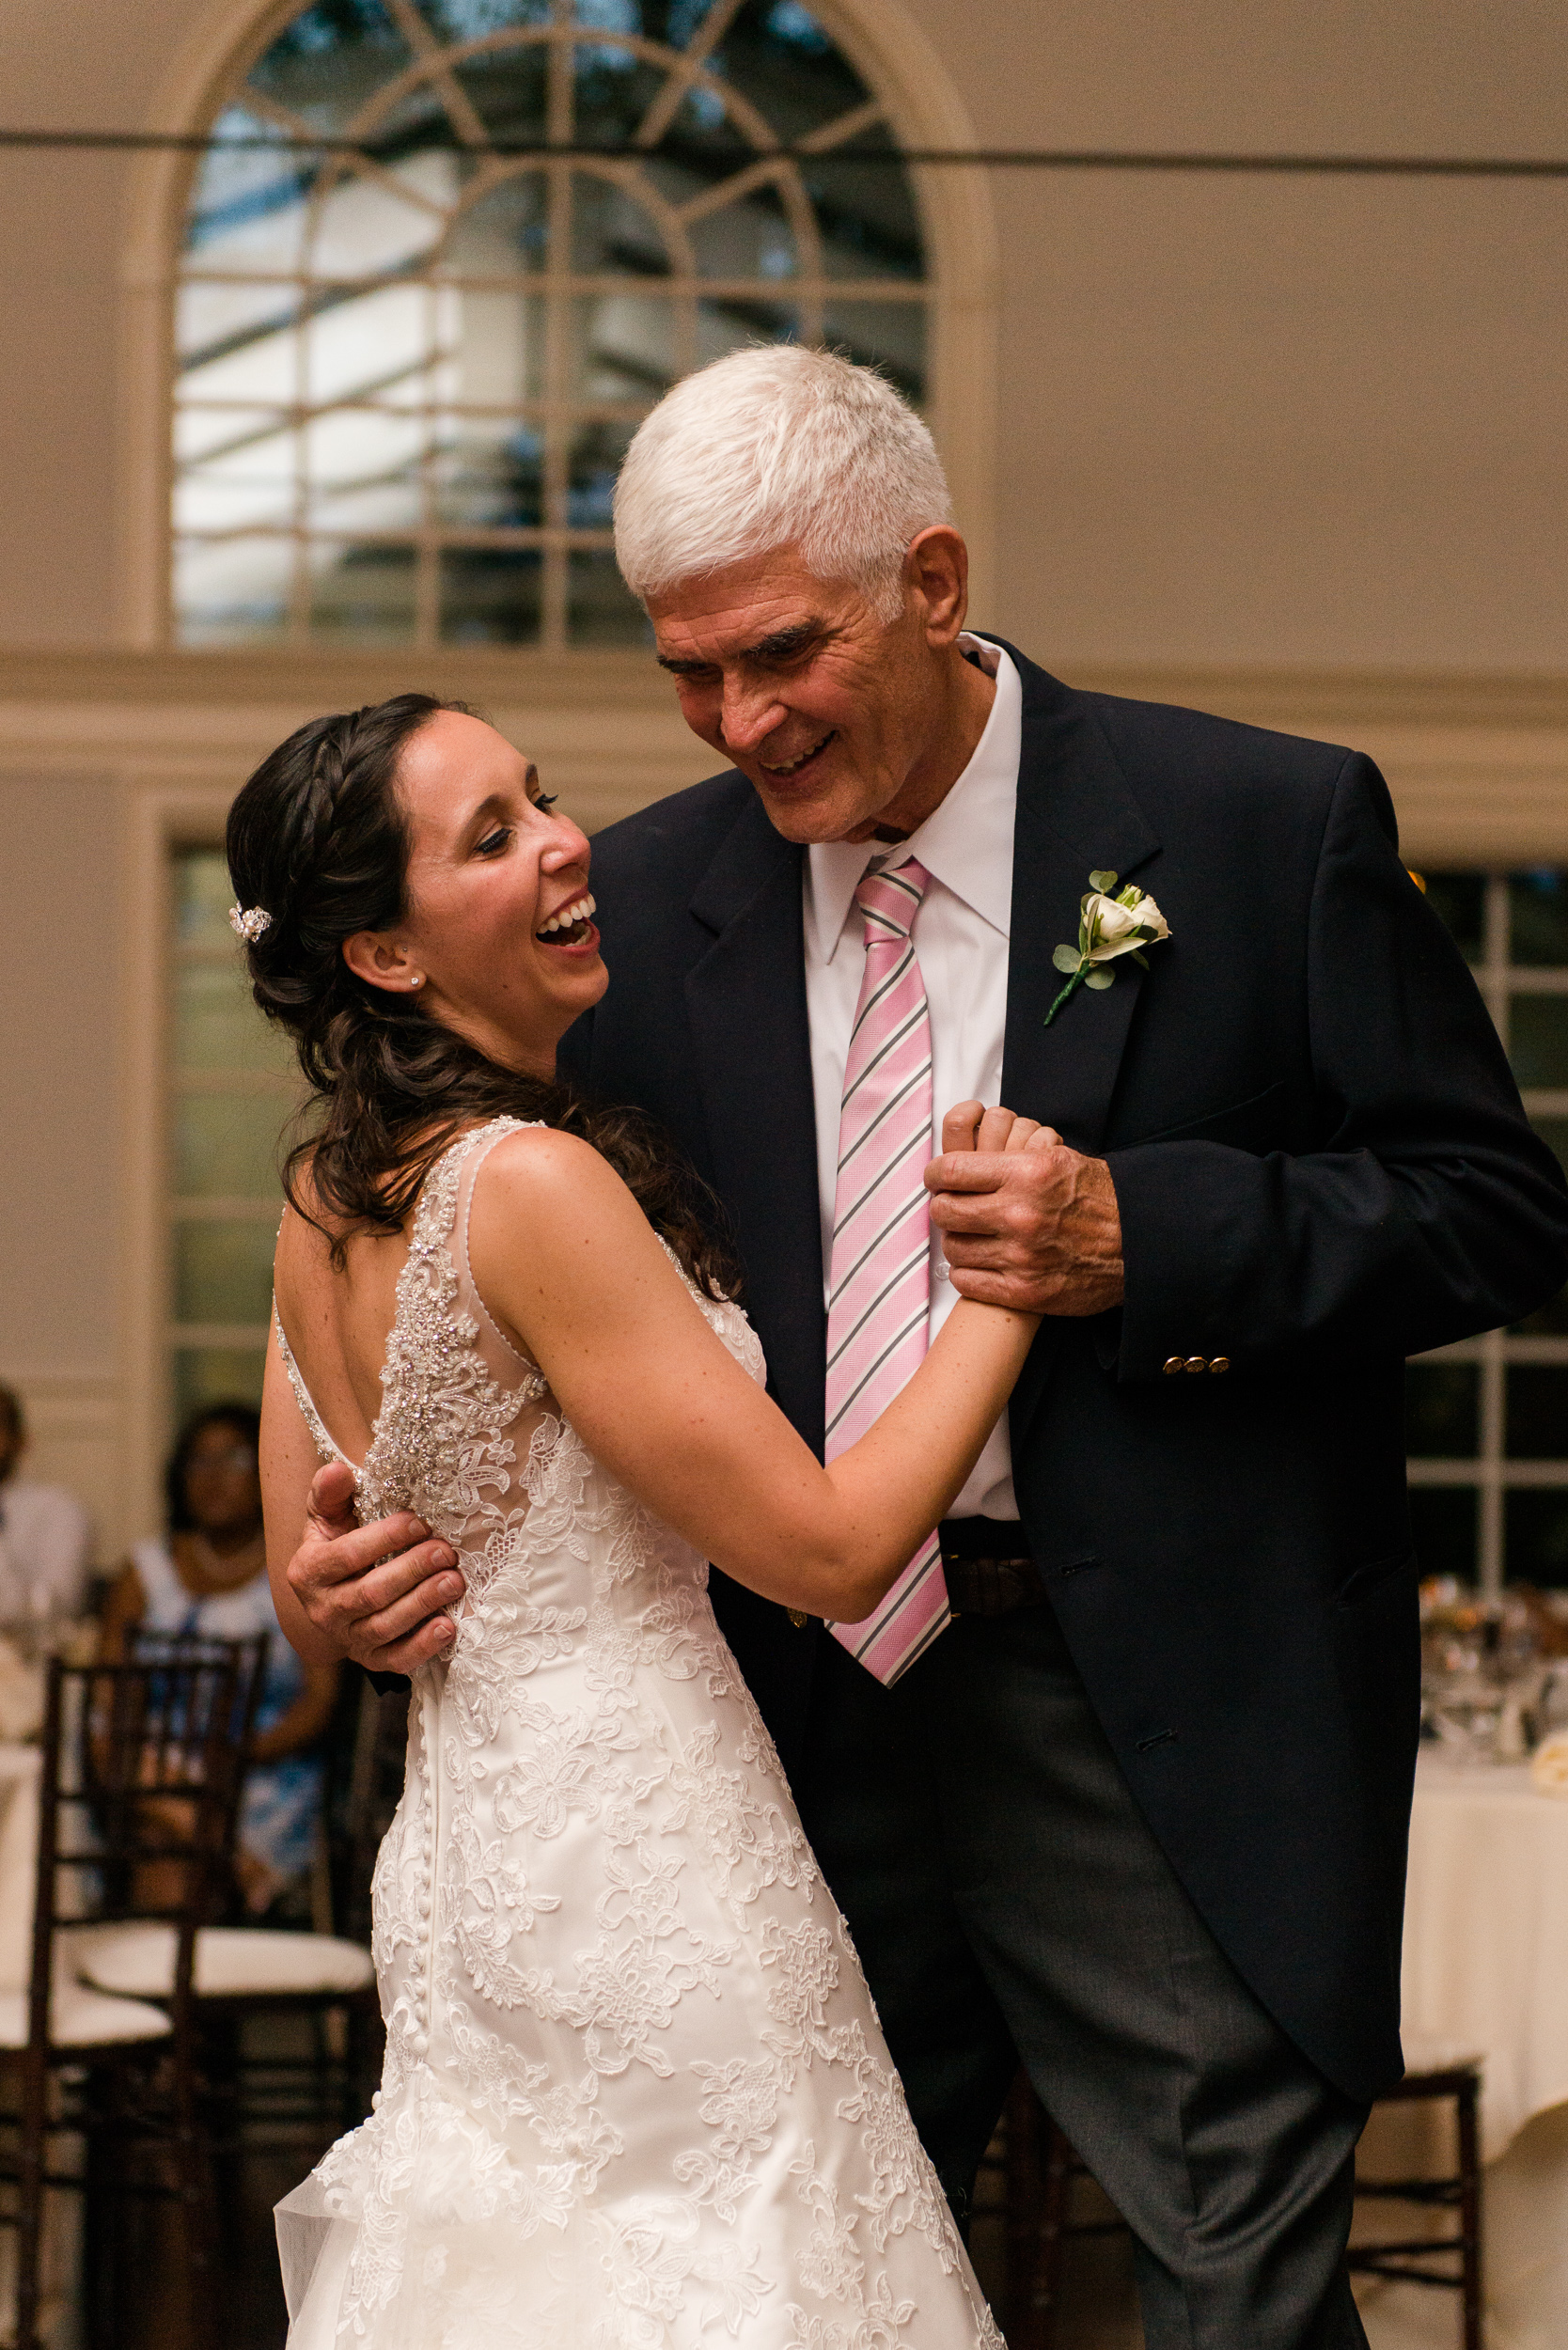 The bride and her father dance together in a ballroom wedding reception at the chesapeake bay beach club in stevensville, md